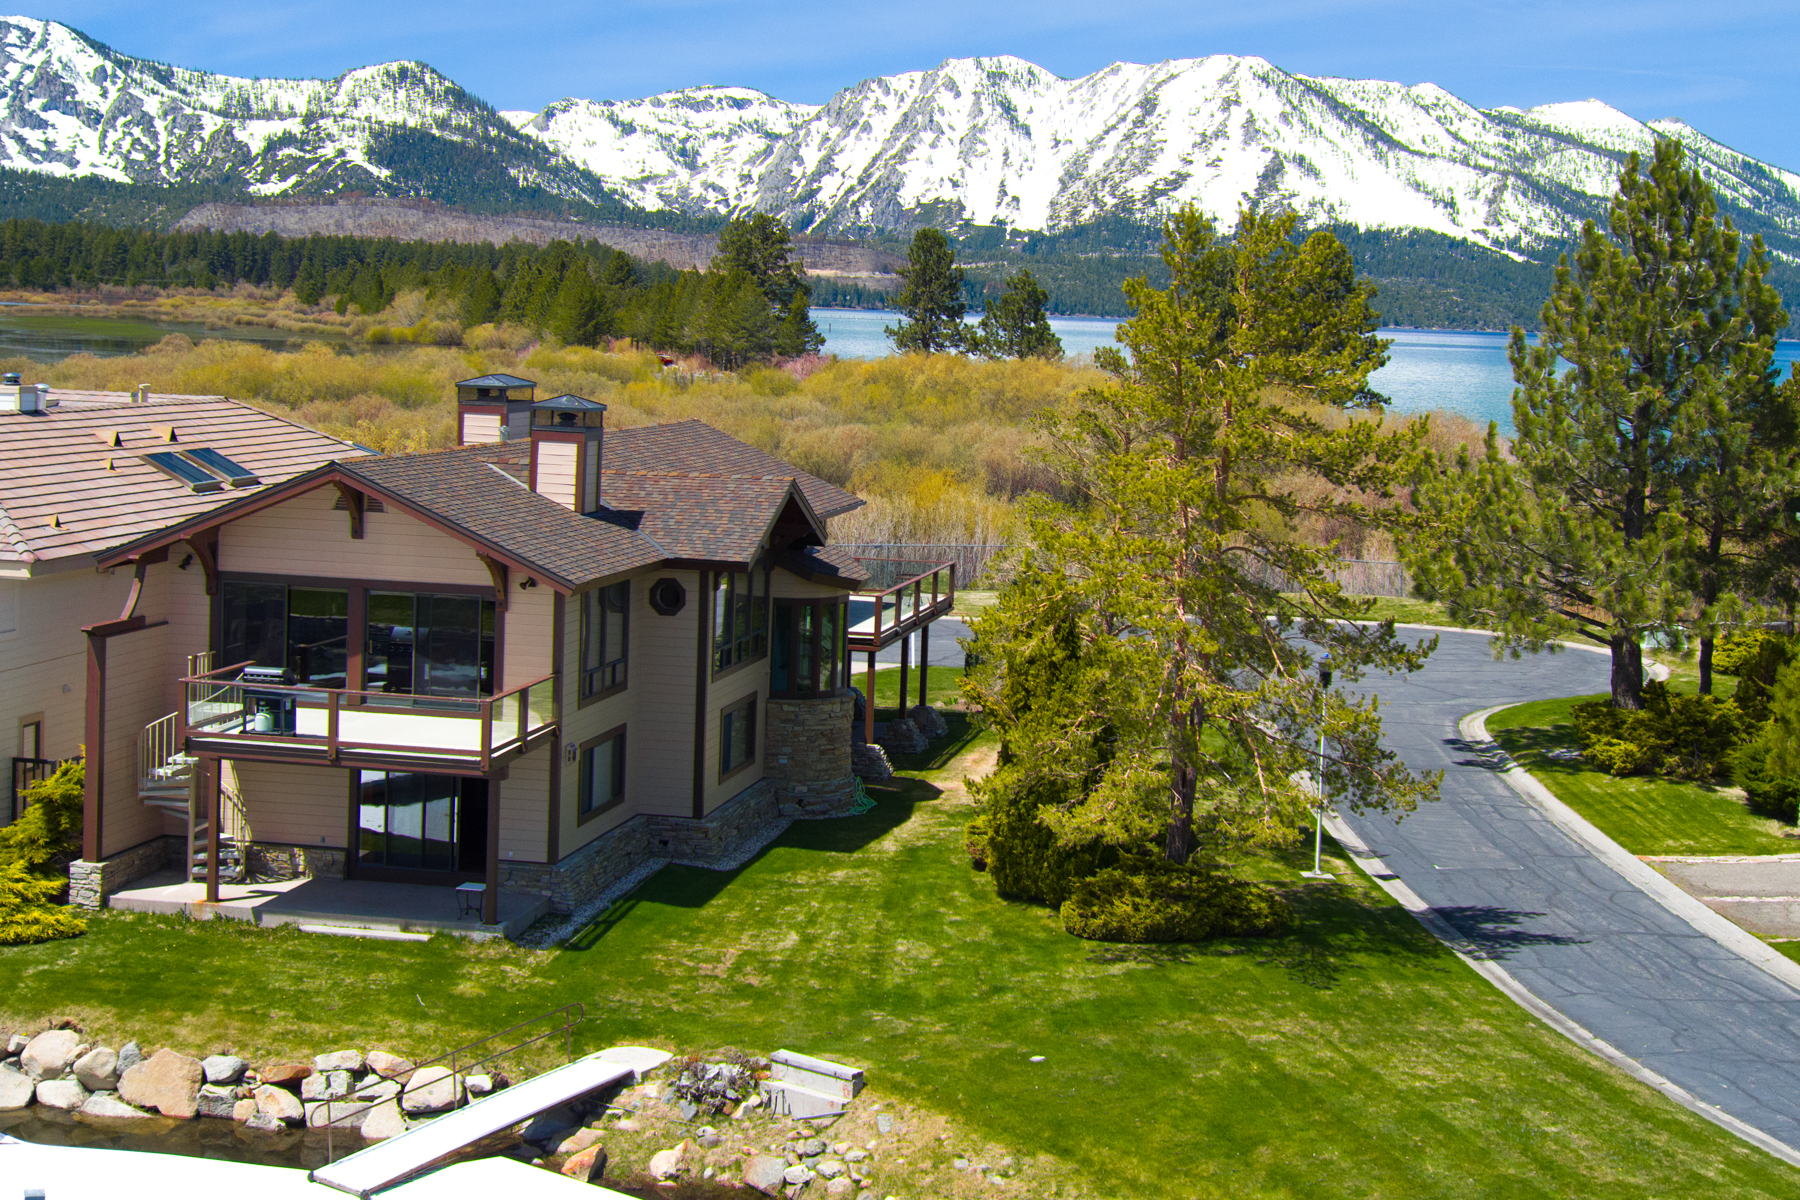 Single Family Home for Active at 5 Lighthouse Shores Drive, South Lake Tahoe, California 96150 South Lake Tahoe, California 96150 United States